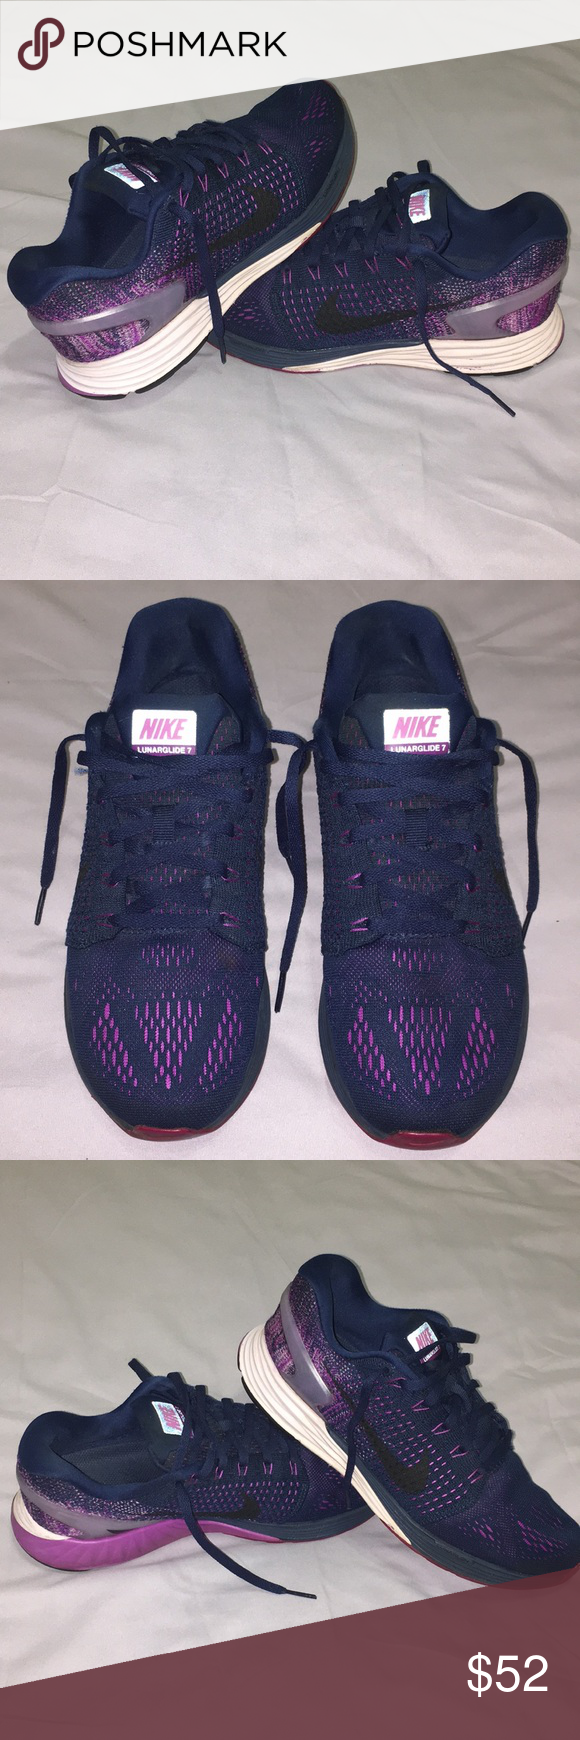 size 40 4ae5c 5a7f9 Nike Lunar glide 7 Navy, pink, violet lunarglide 7. purple and light pink  soles. Used with no rips and no sign of use on the cloth of the shoe, ...